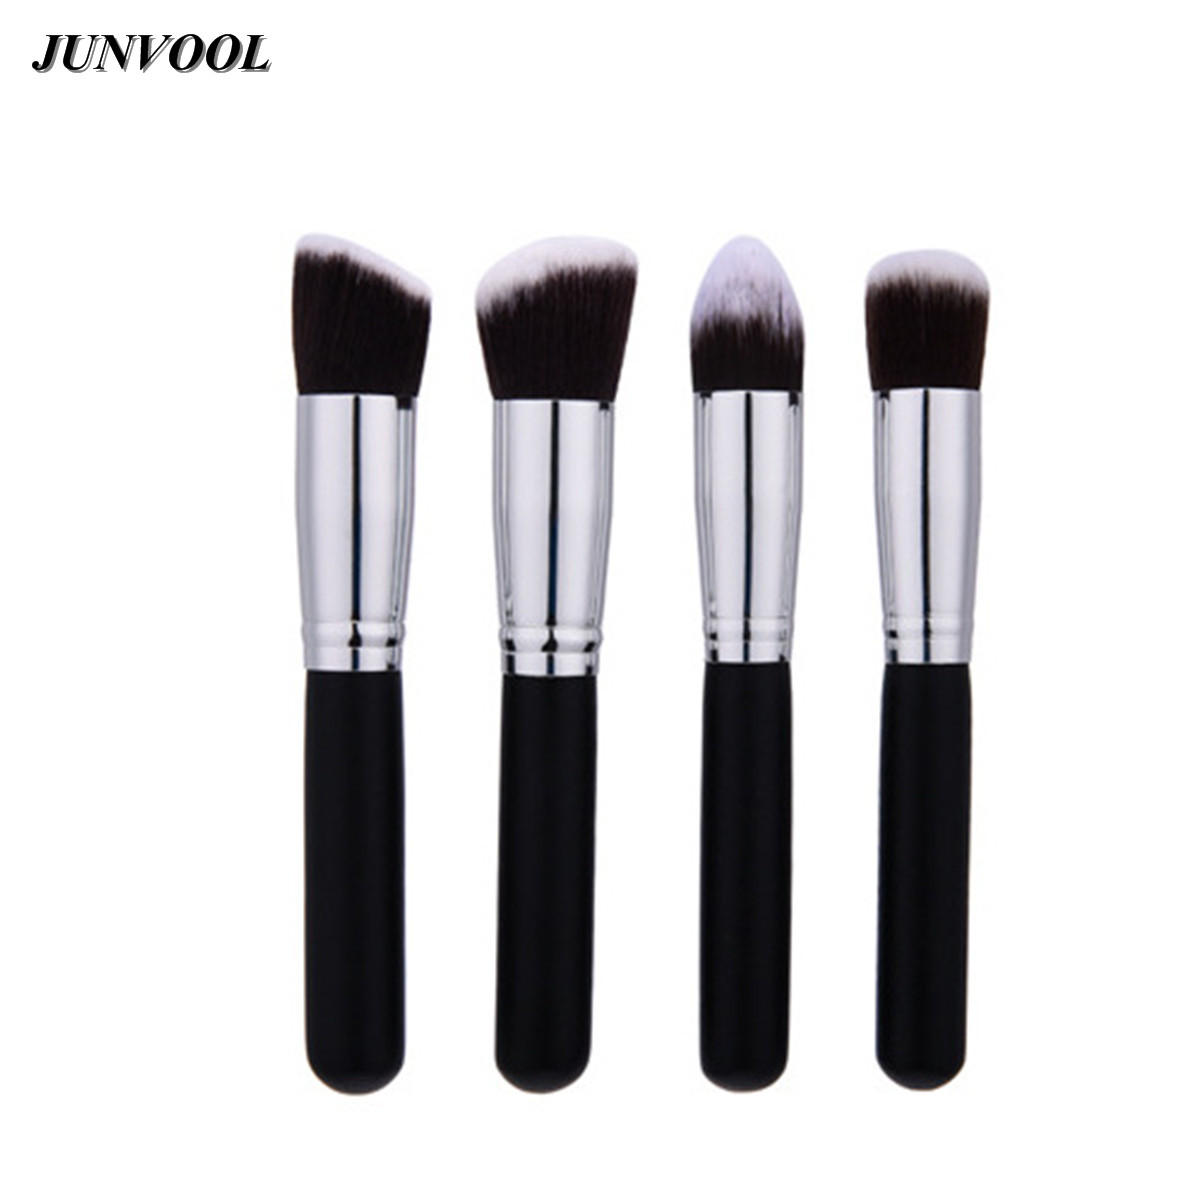 New Travelling Makeup Brush Set 4Pcs Synthetic Blending Powder Blush Eyeshadow Large Foundation Contour Make Up Brushes Silver focallure 10pcs makeup brushes set foundation blending powder eyeshadow contour blush brush beauty cosmetic make up tool kit